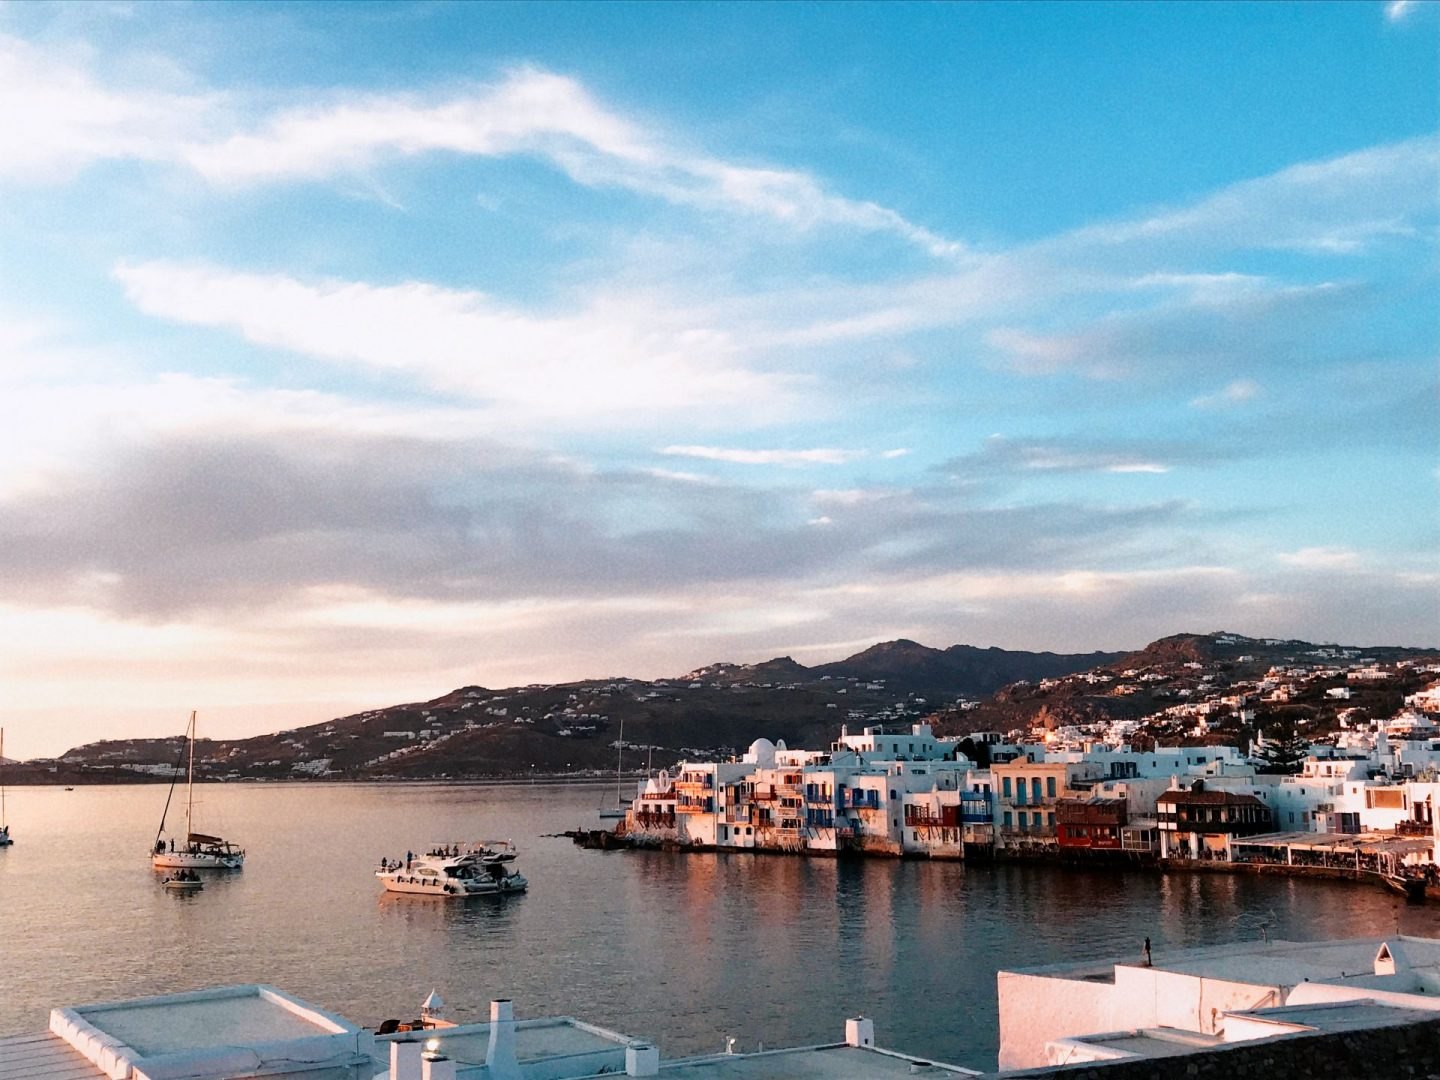 Instagrammable Mykonos Little Venice